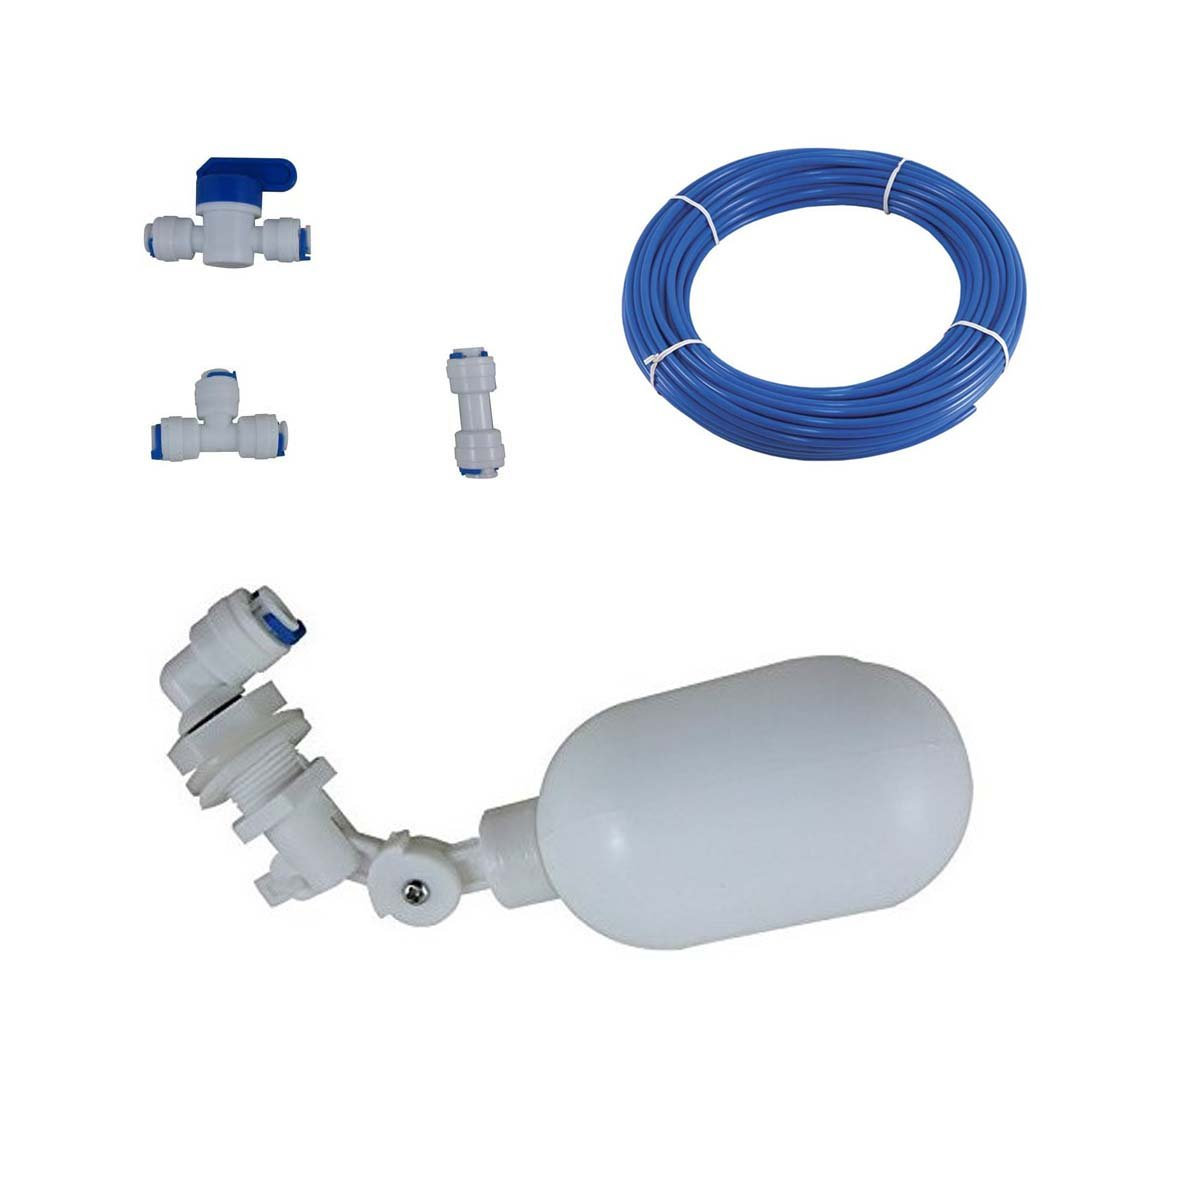 Malida 1//4 Tube Float Valve Kit for RO Water Reverse Osmosis System water filter Push to Connect Pipe Hose Tube Fittings